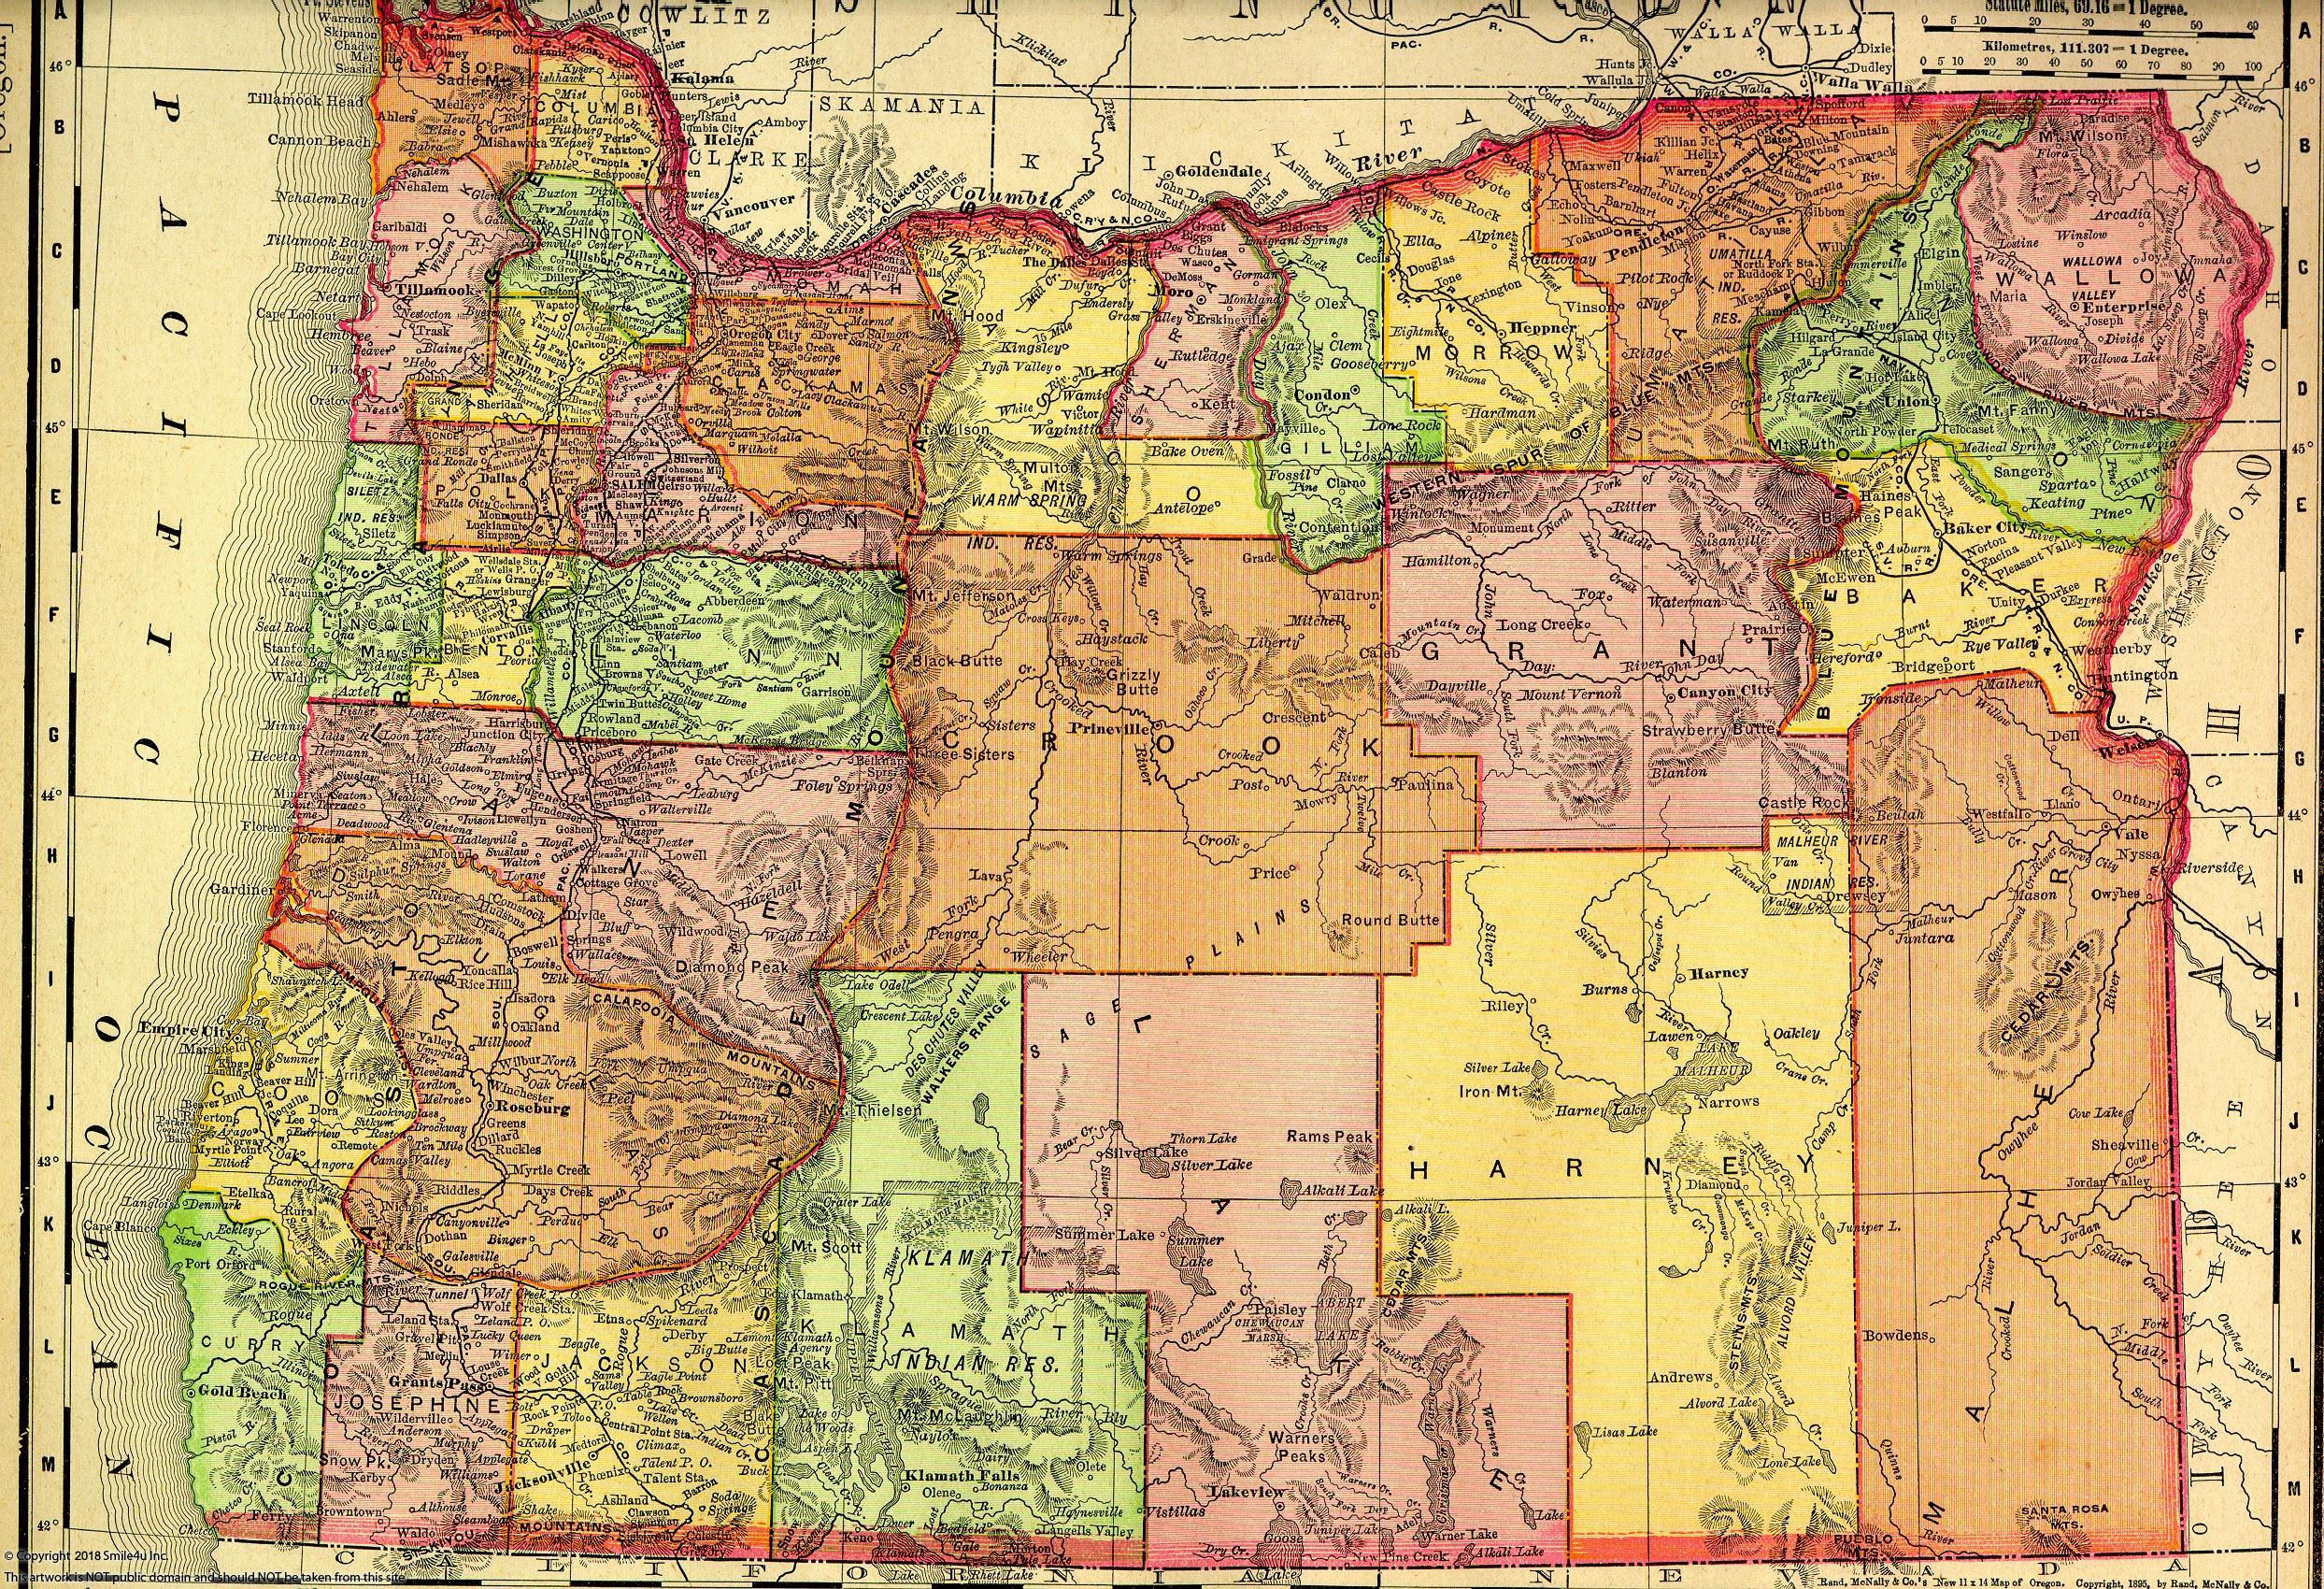 132411_watermarked_1895 historic map.jpg